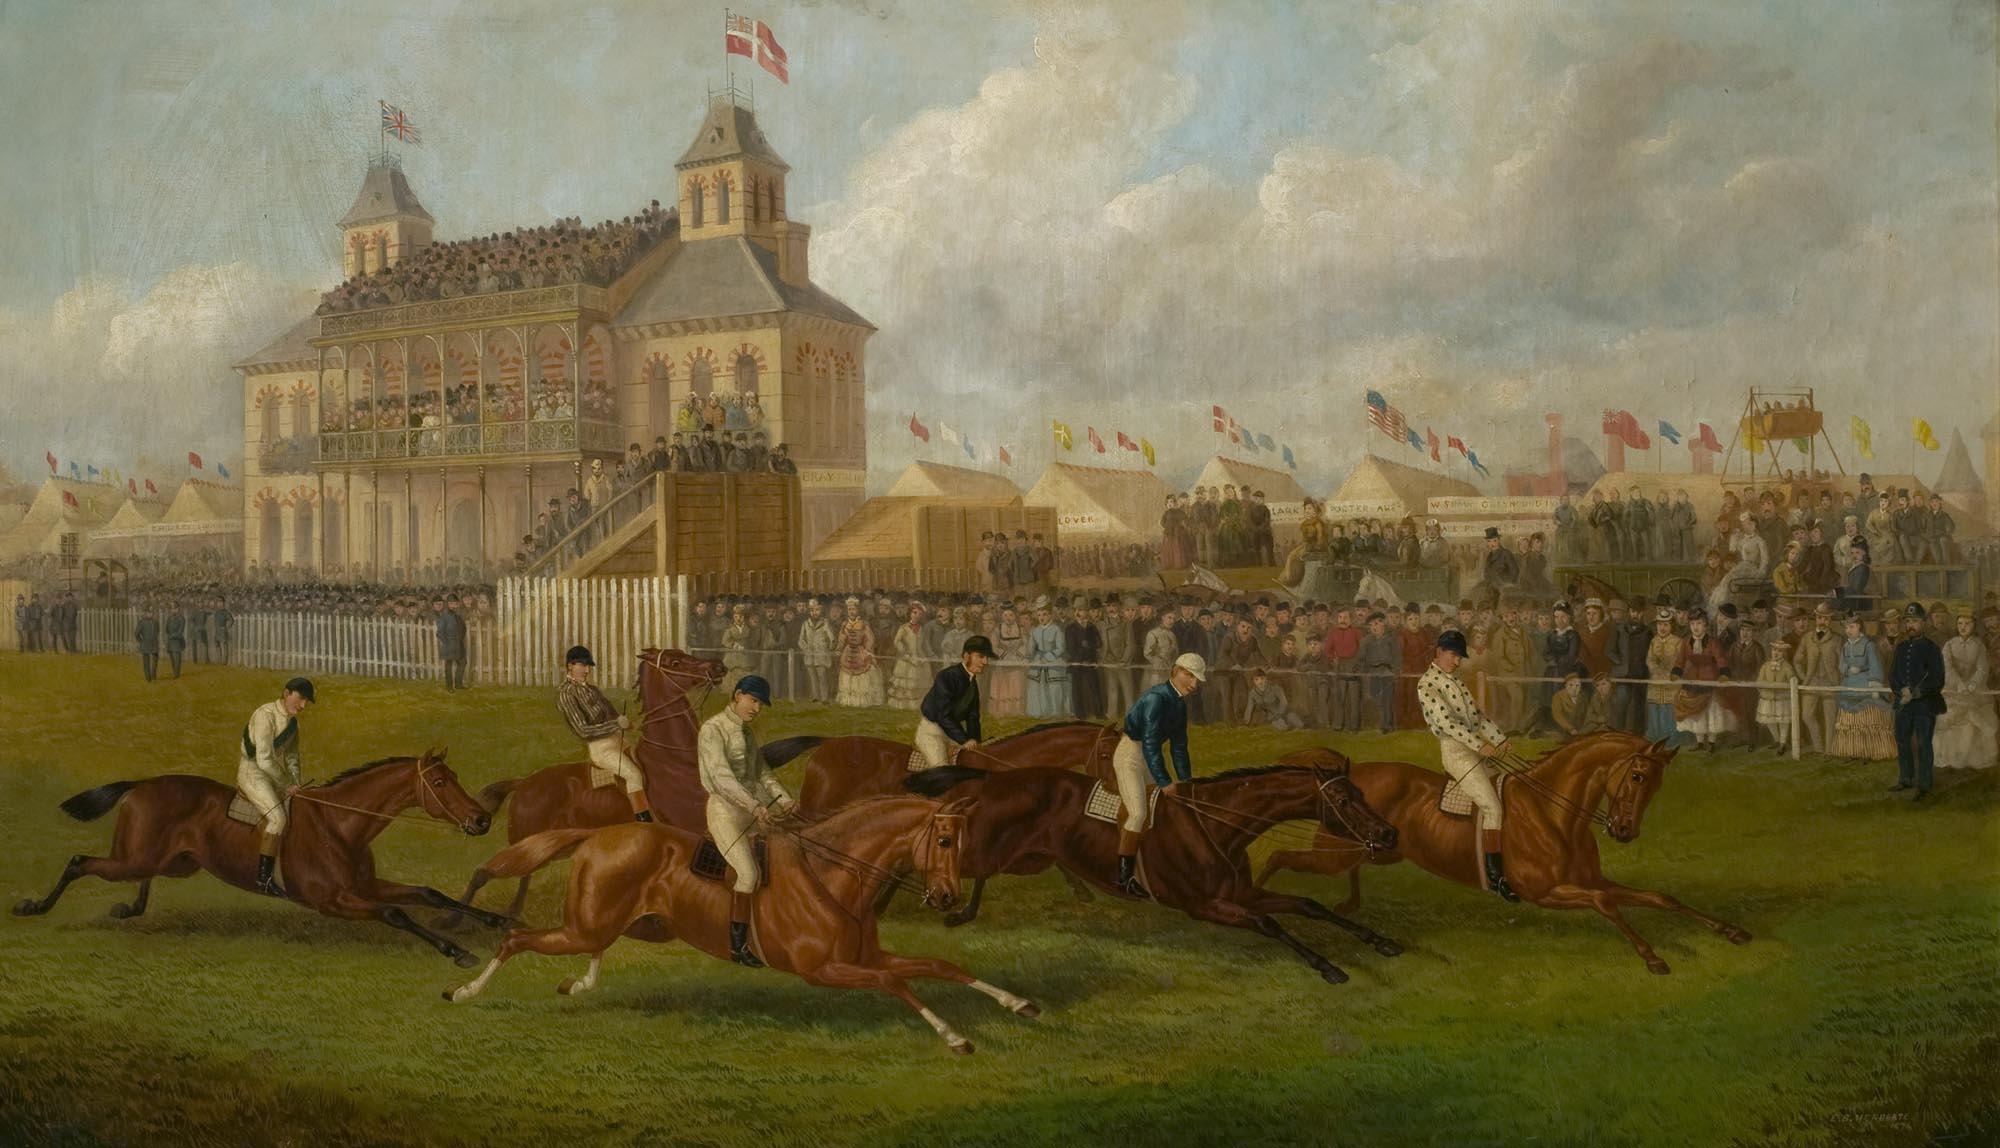 A Horse Race in Victoria Park by EB Herbert, 1874. Oil on canvas -